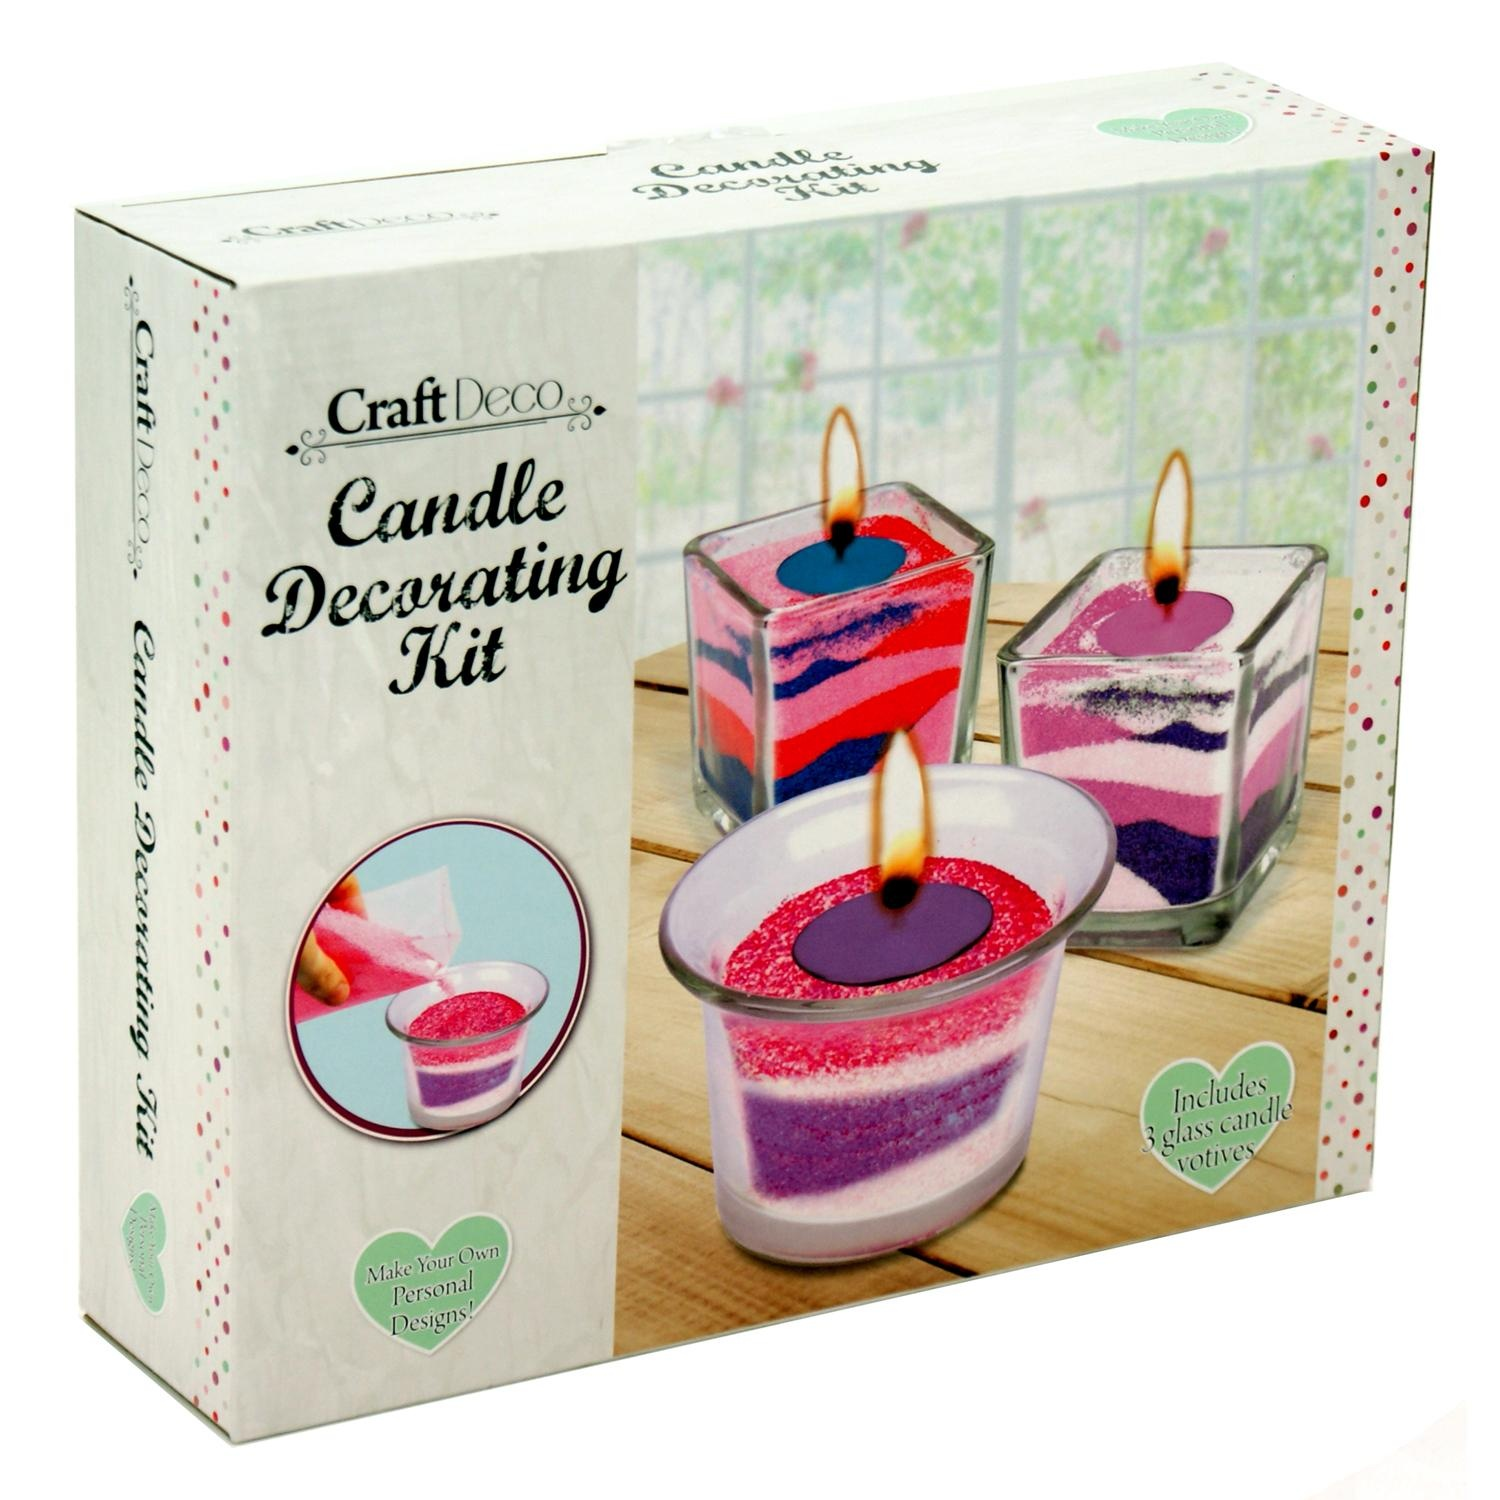 Craft Deco Make your own Glass Jar Candle Decorating Kit